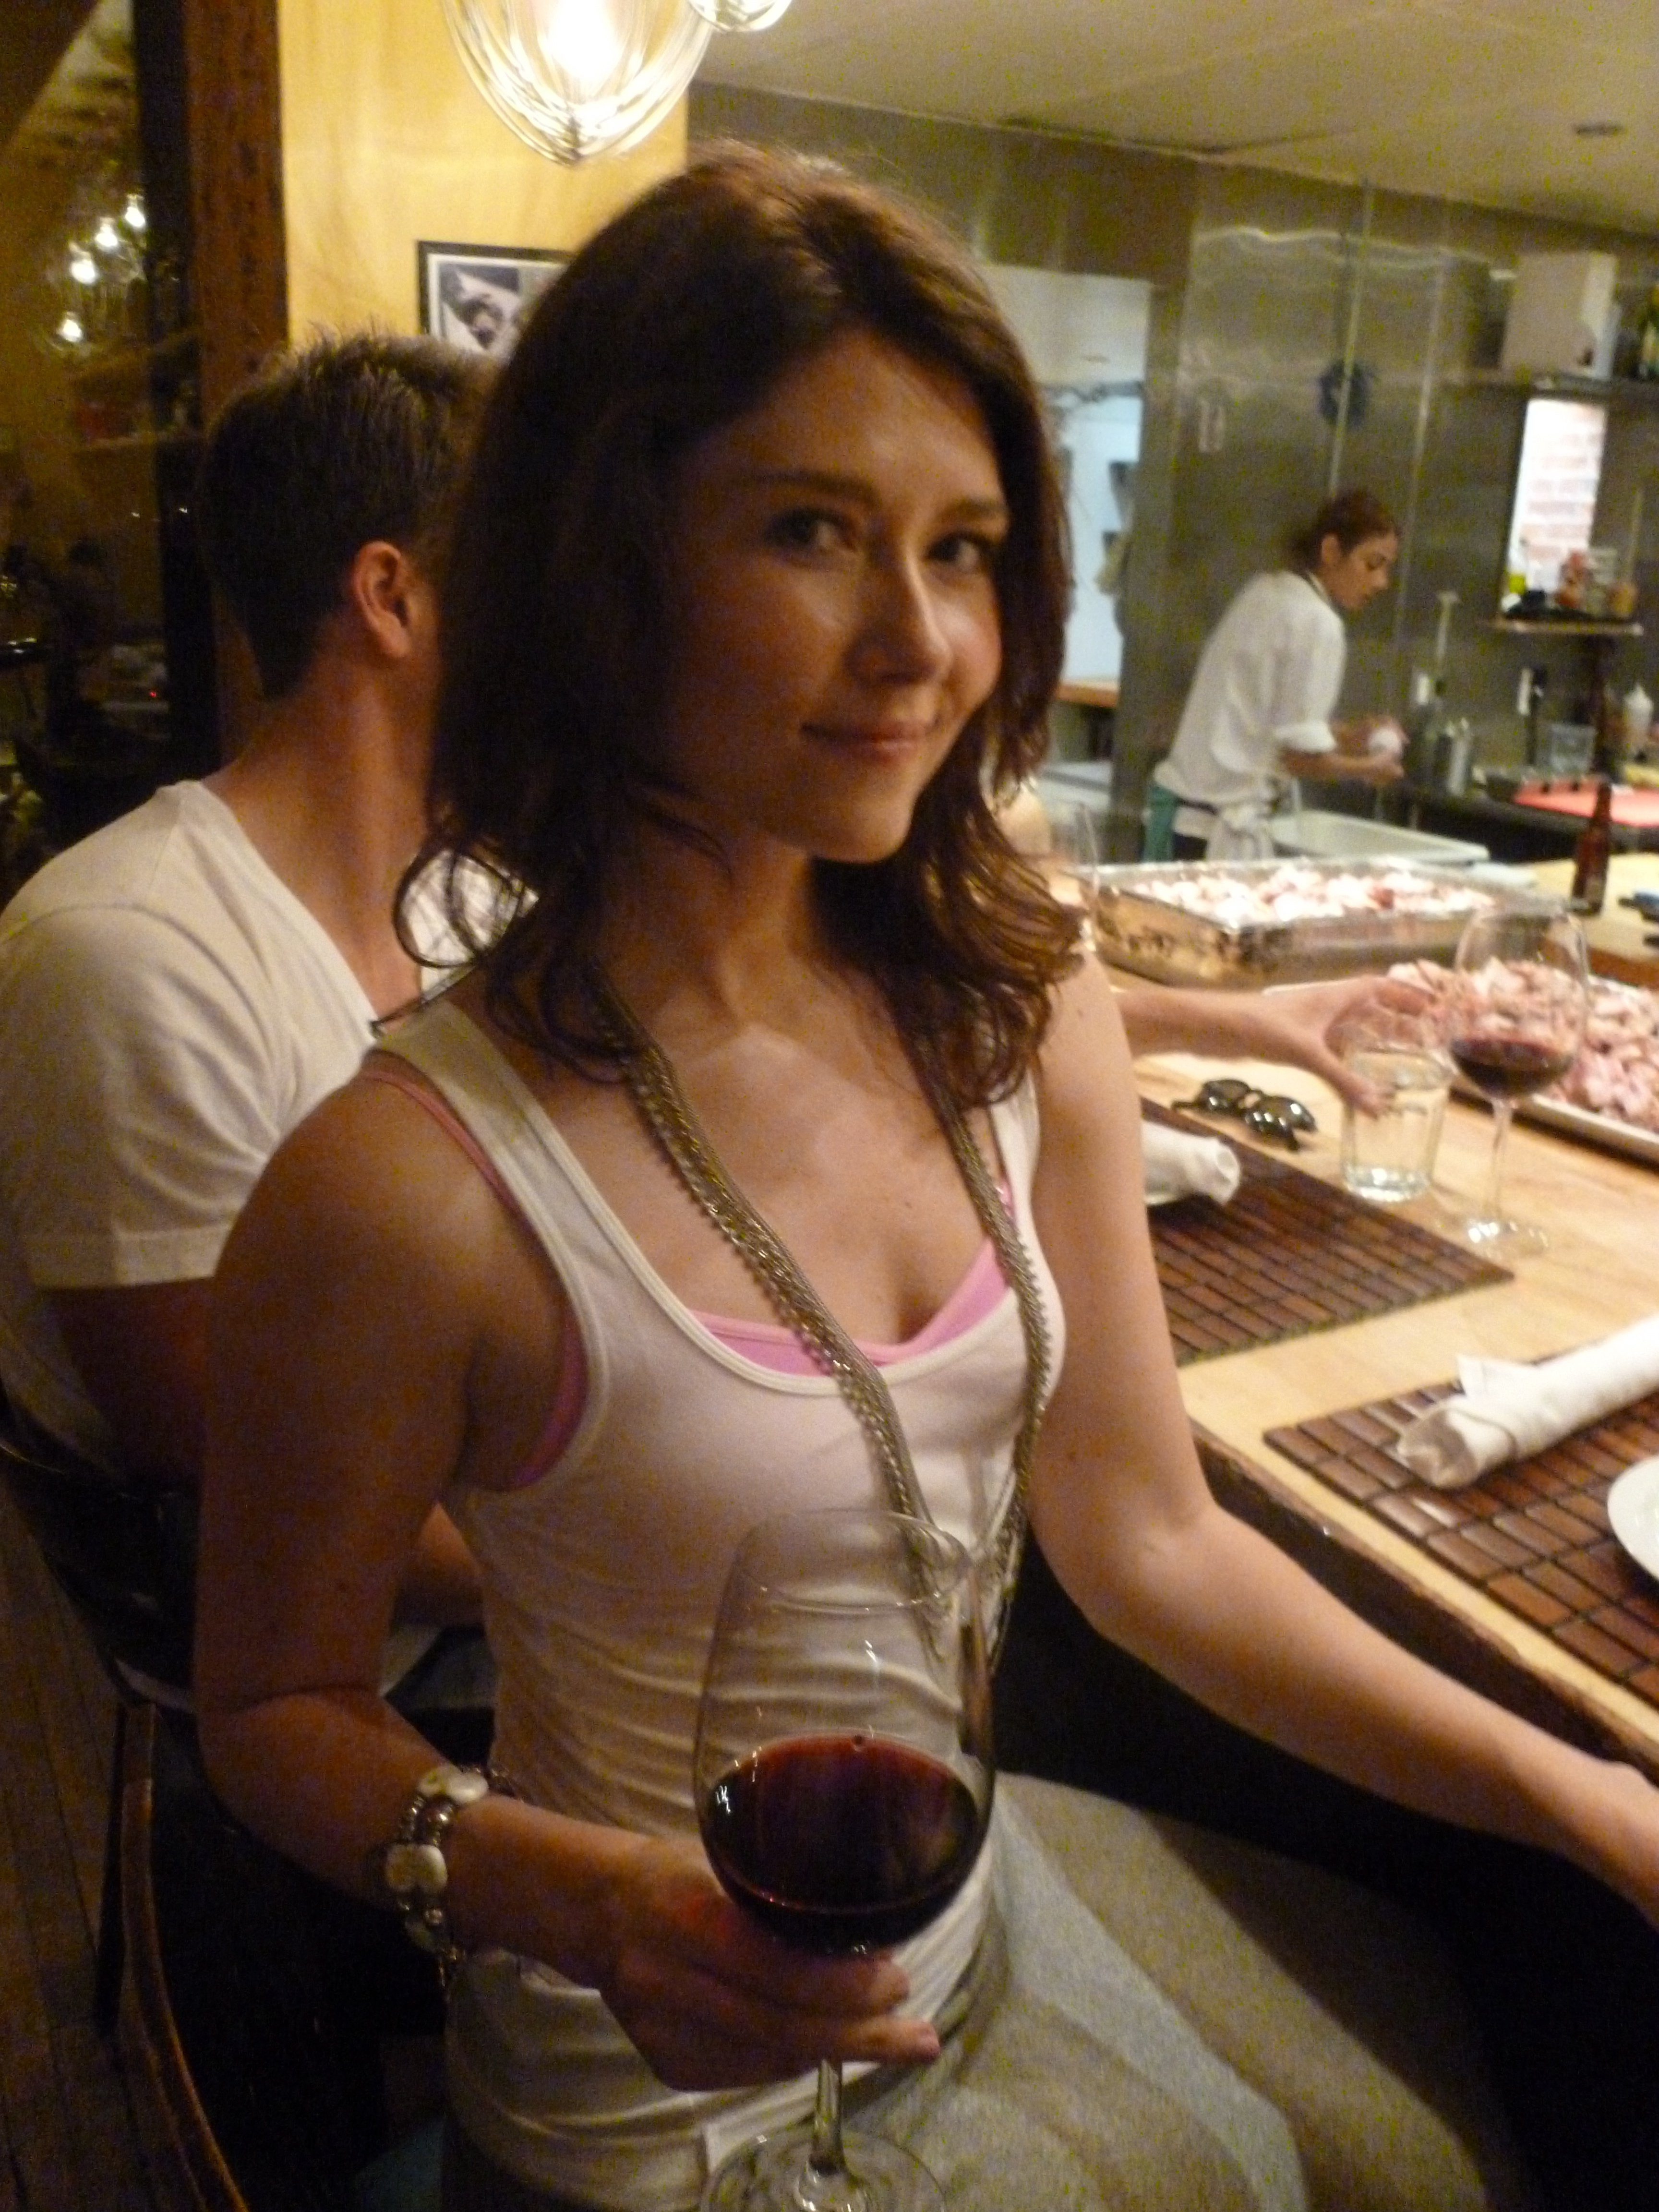 Jewel Staite Fappening photo 13